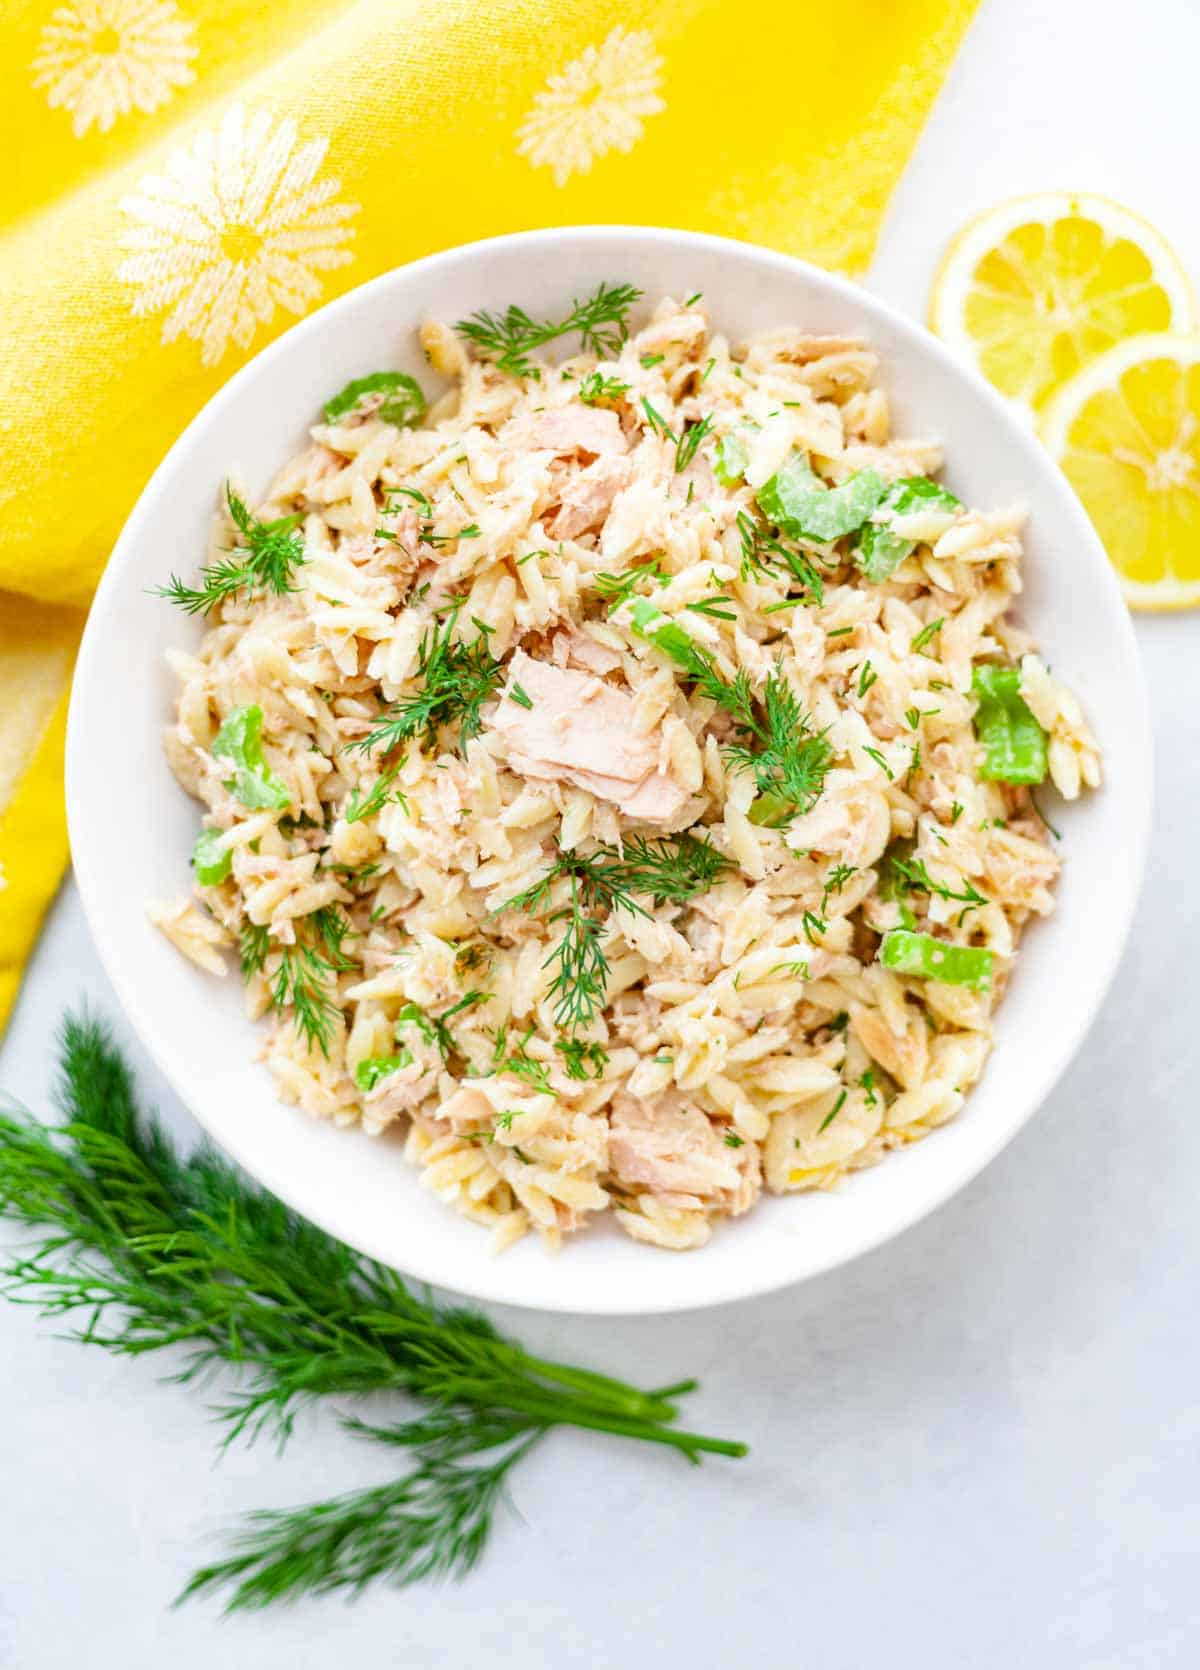 bowl of canned tuna, orzo, celery and dill